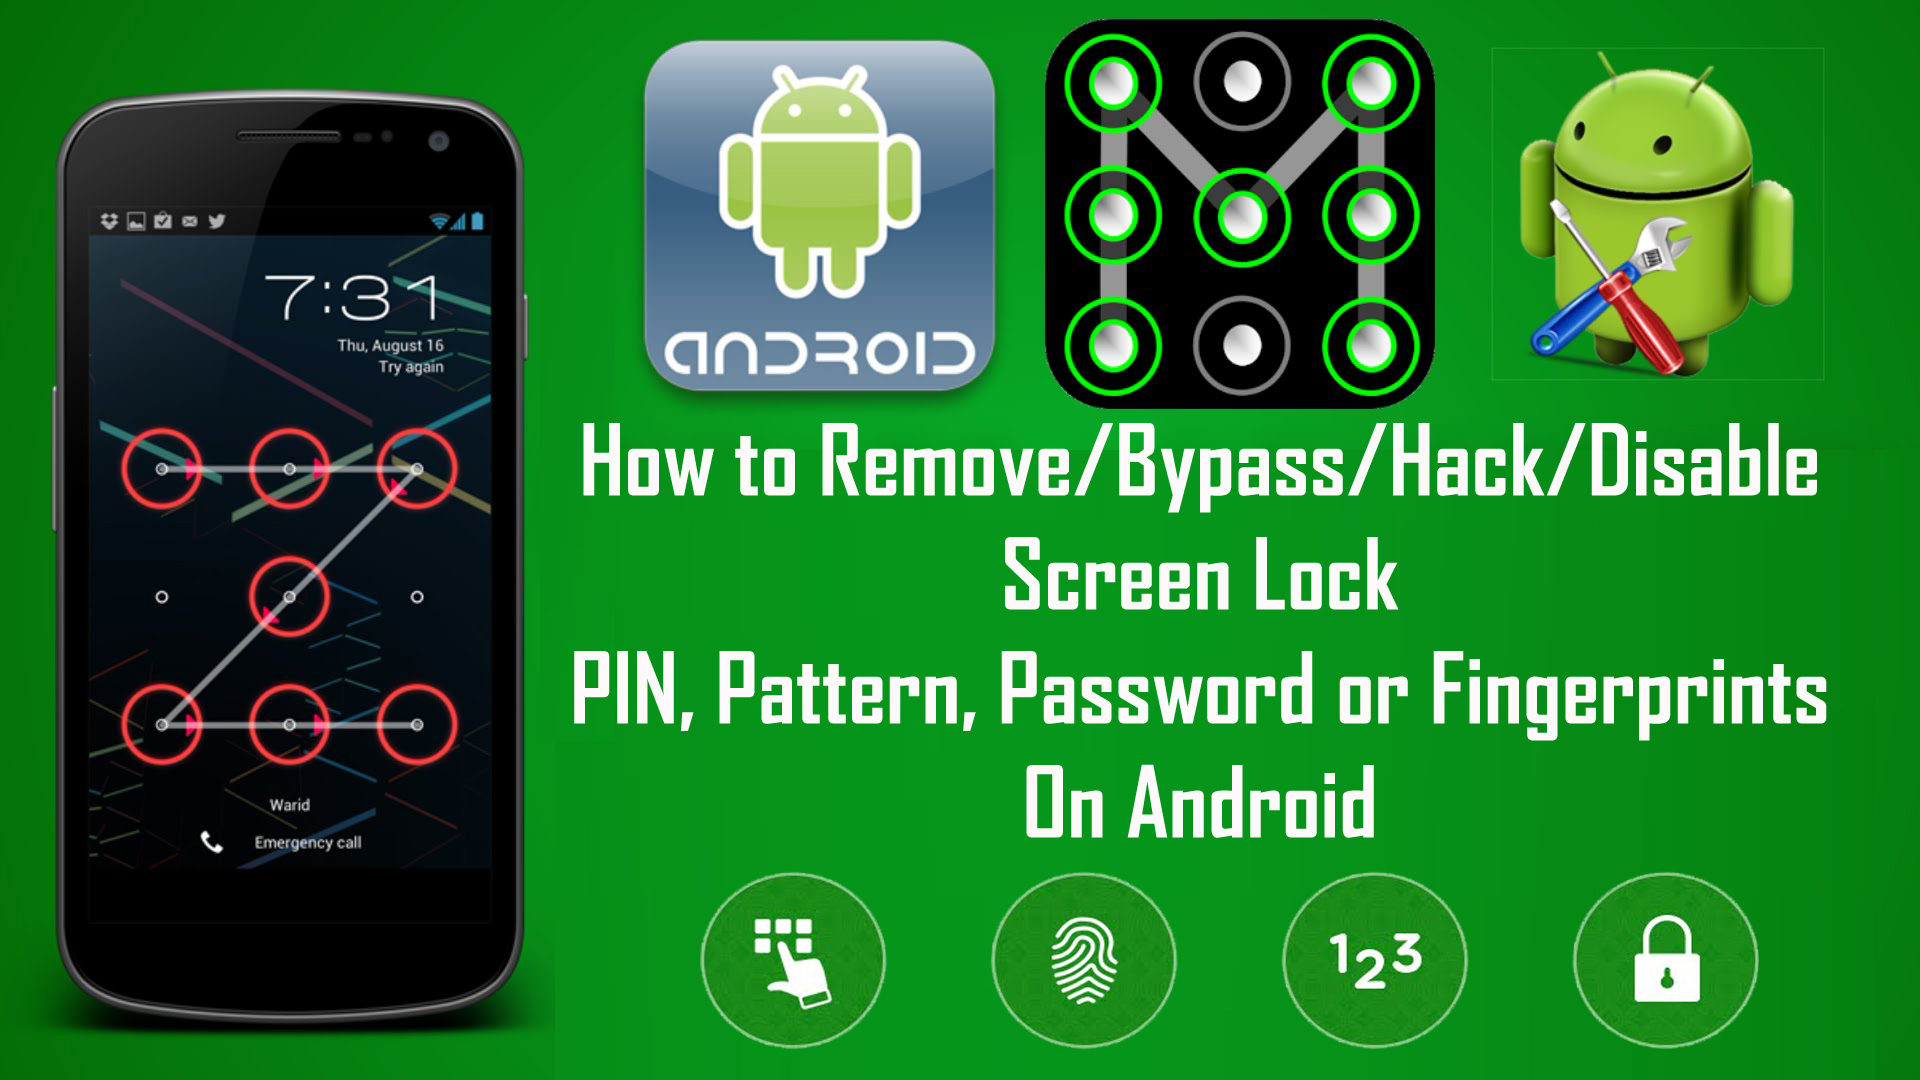 How to Remove or Bypass Android Screen Locks - [PIN, Pattern